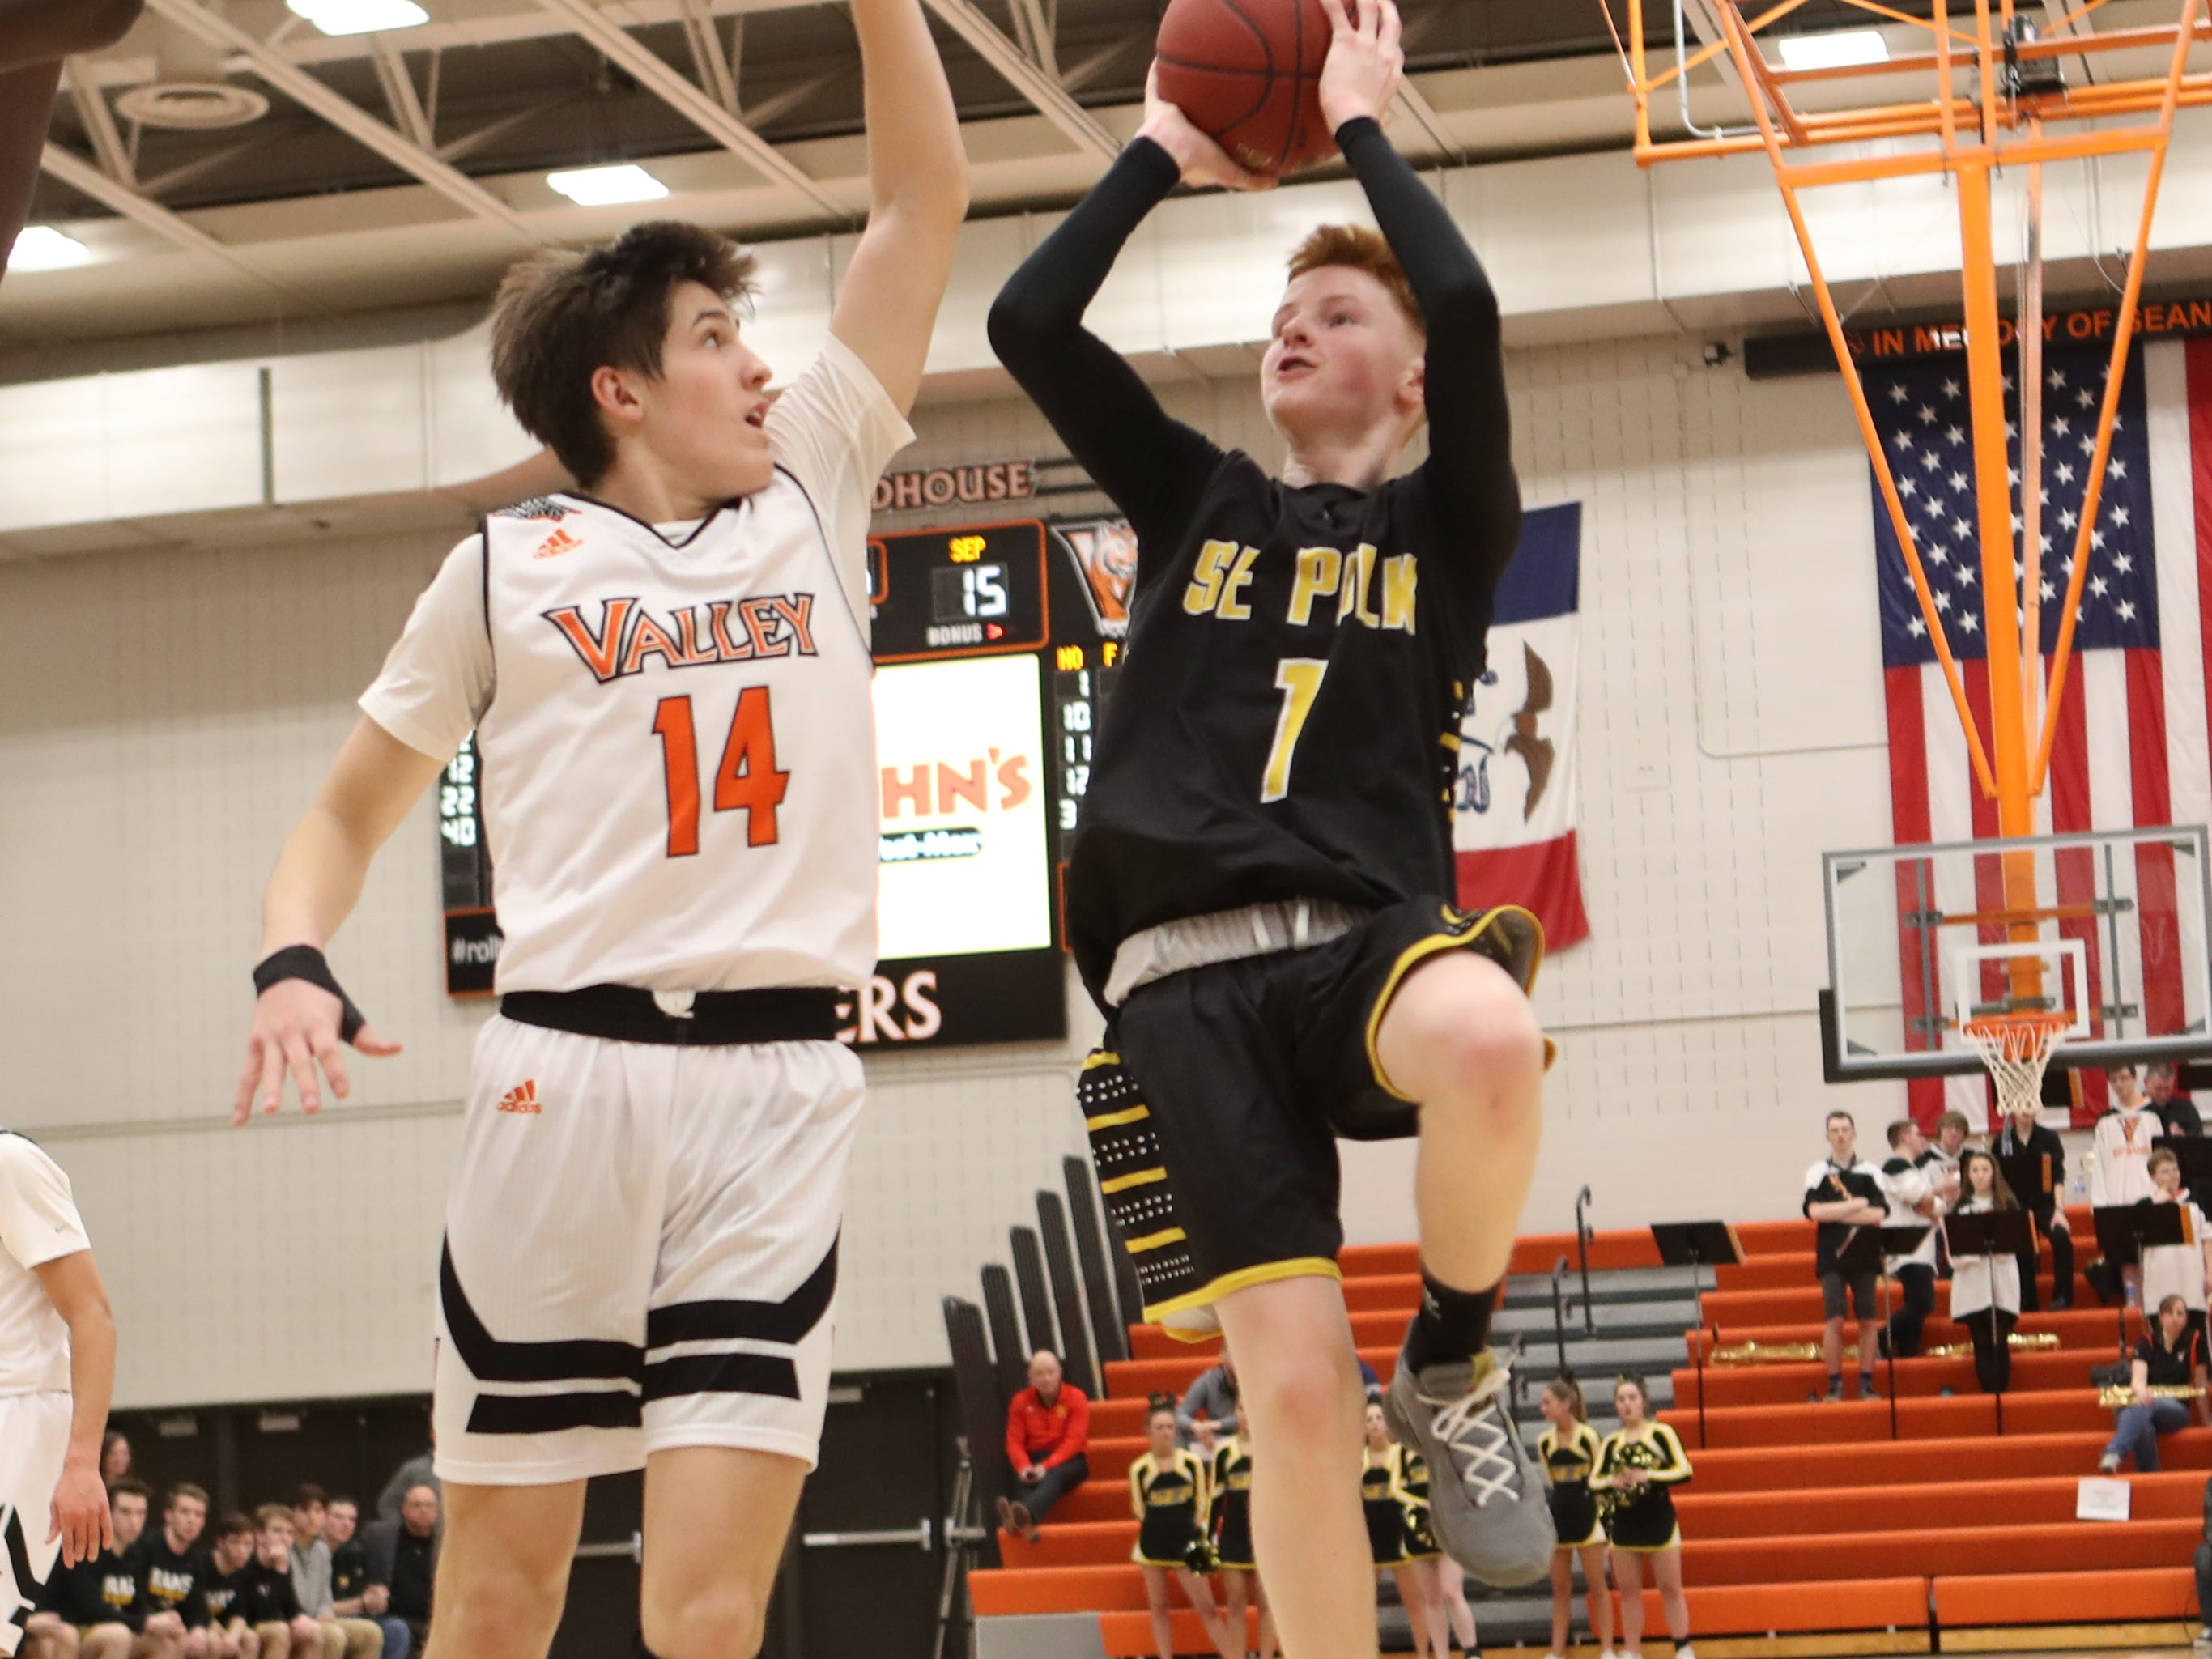 Southeast Polk Rams' James Glenn (1) is defended by Valley Tigers' Jake Auer (14) during a boys basketball game at Valley High School on Jan. 11, 2019.